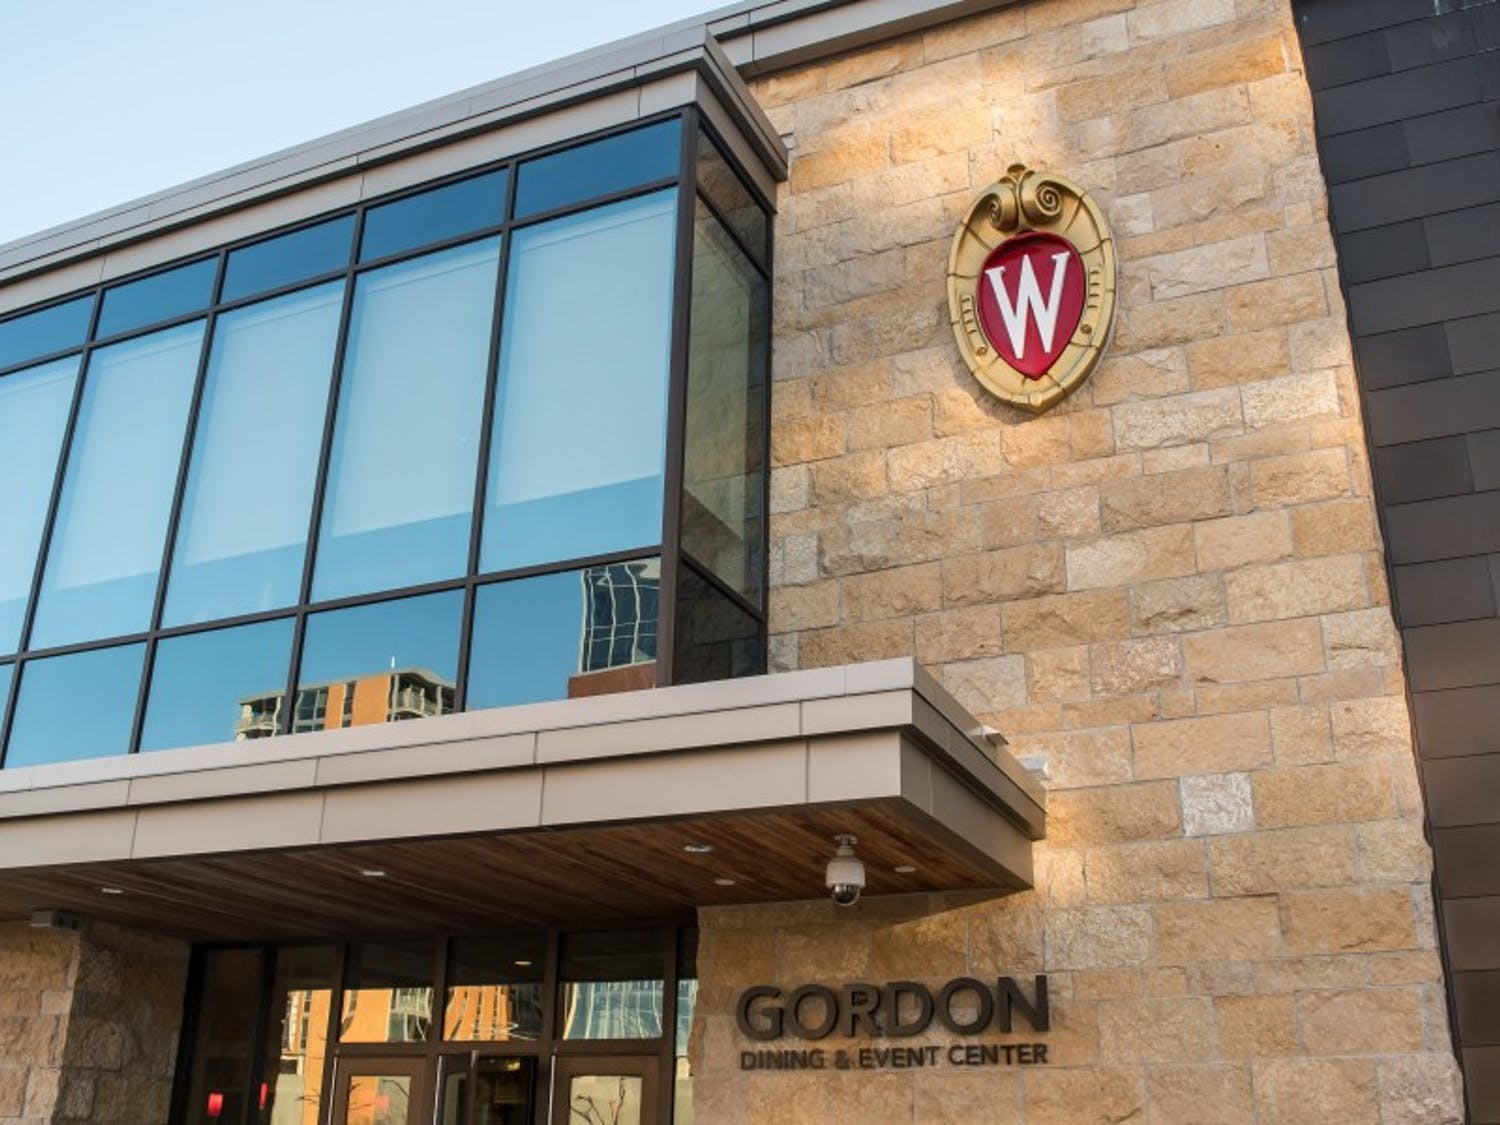 After meeting with students, UW-Madison revises dining policy.